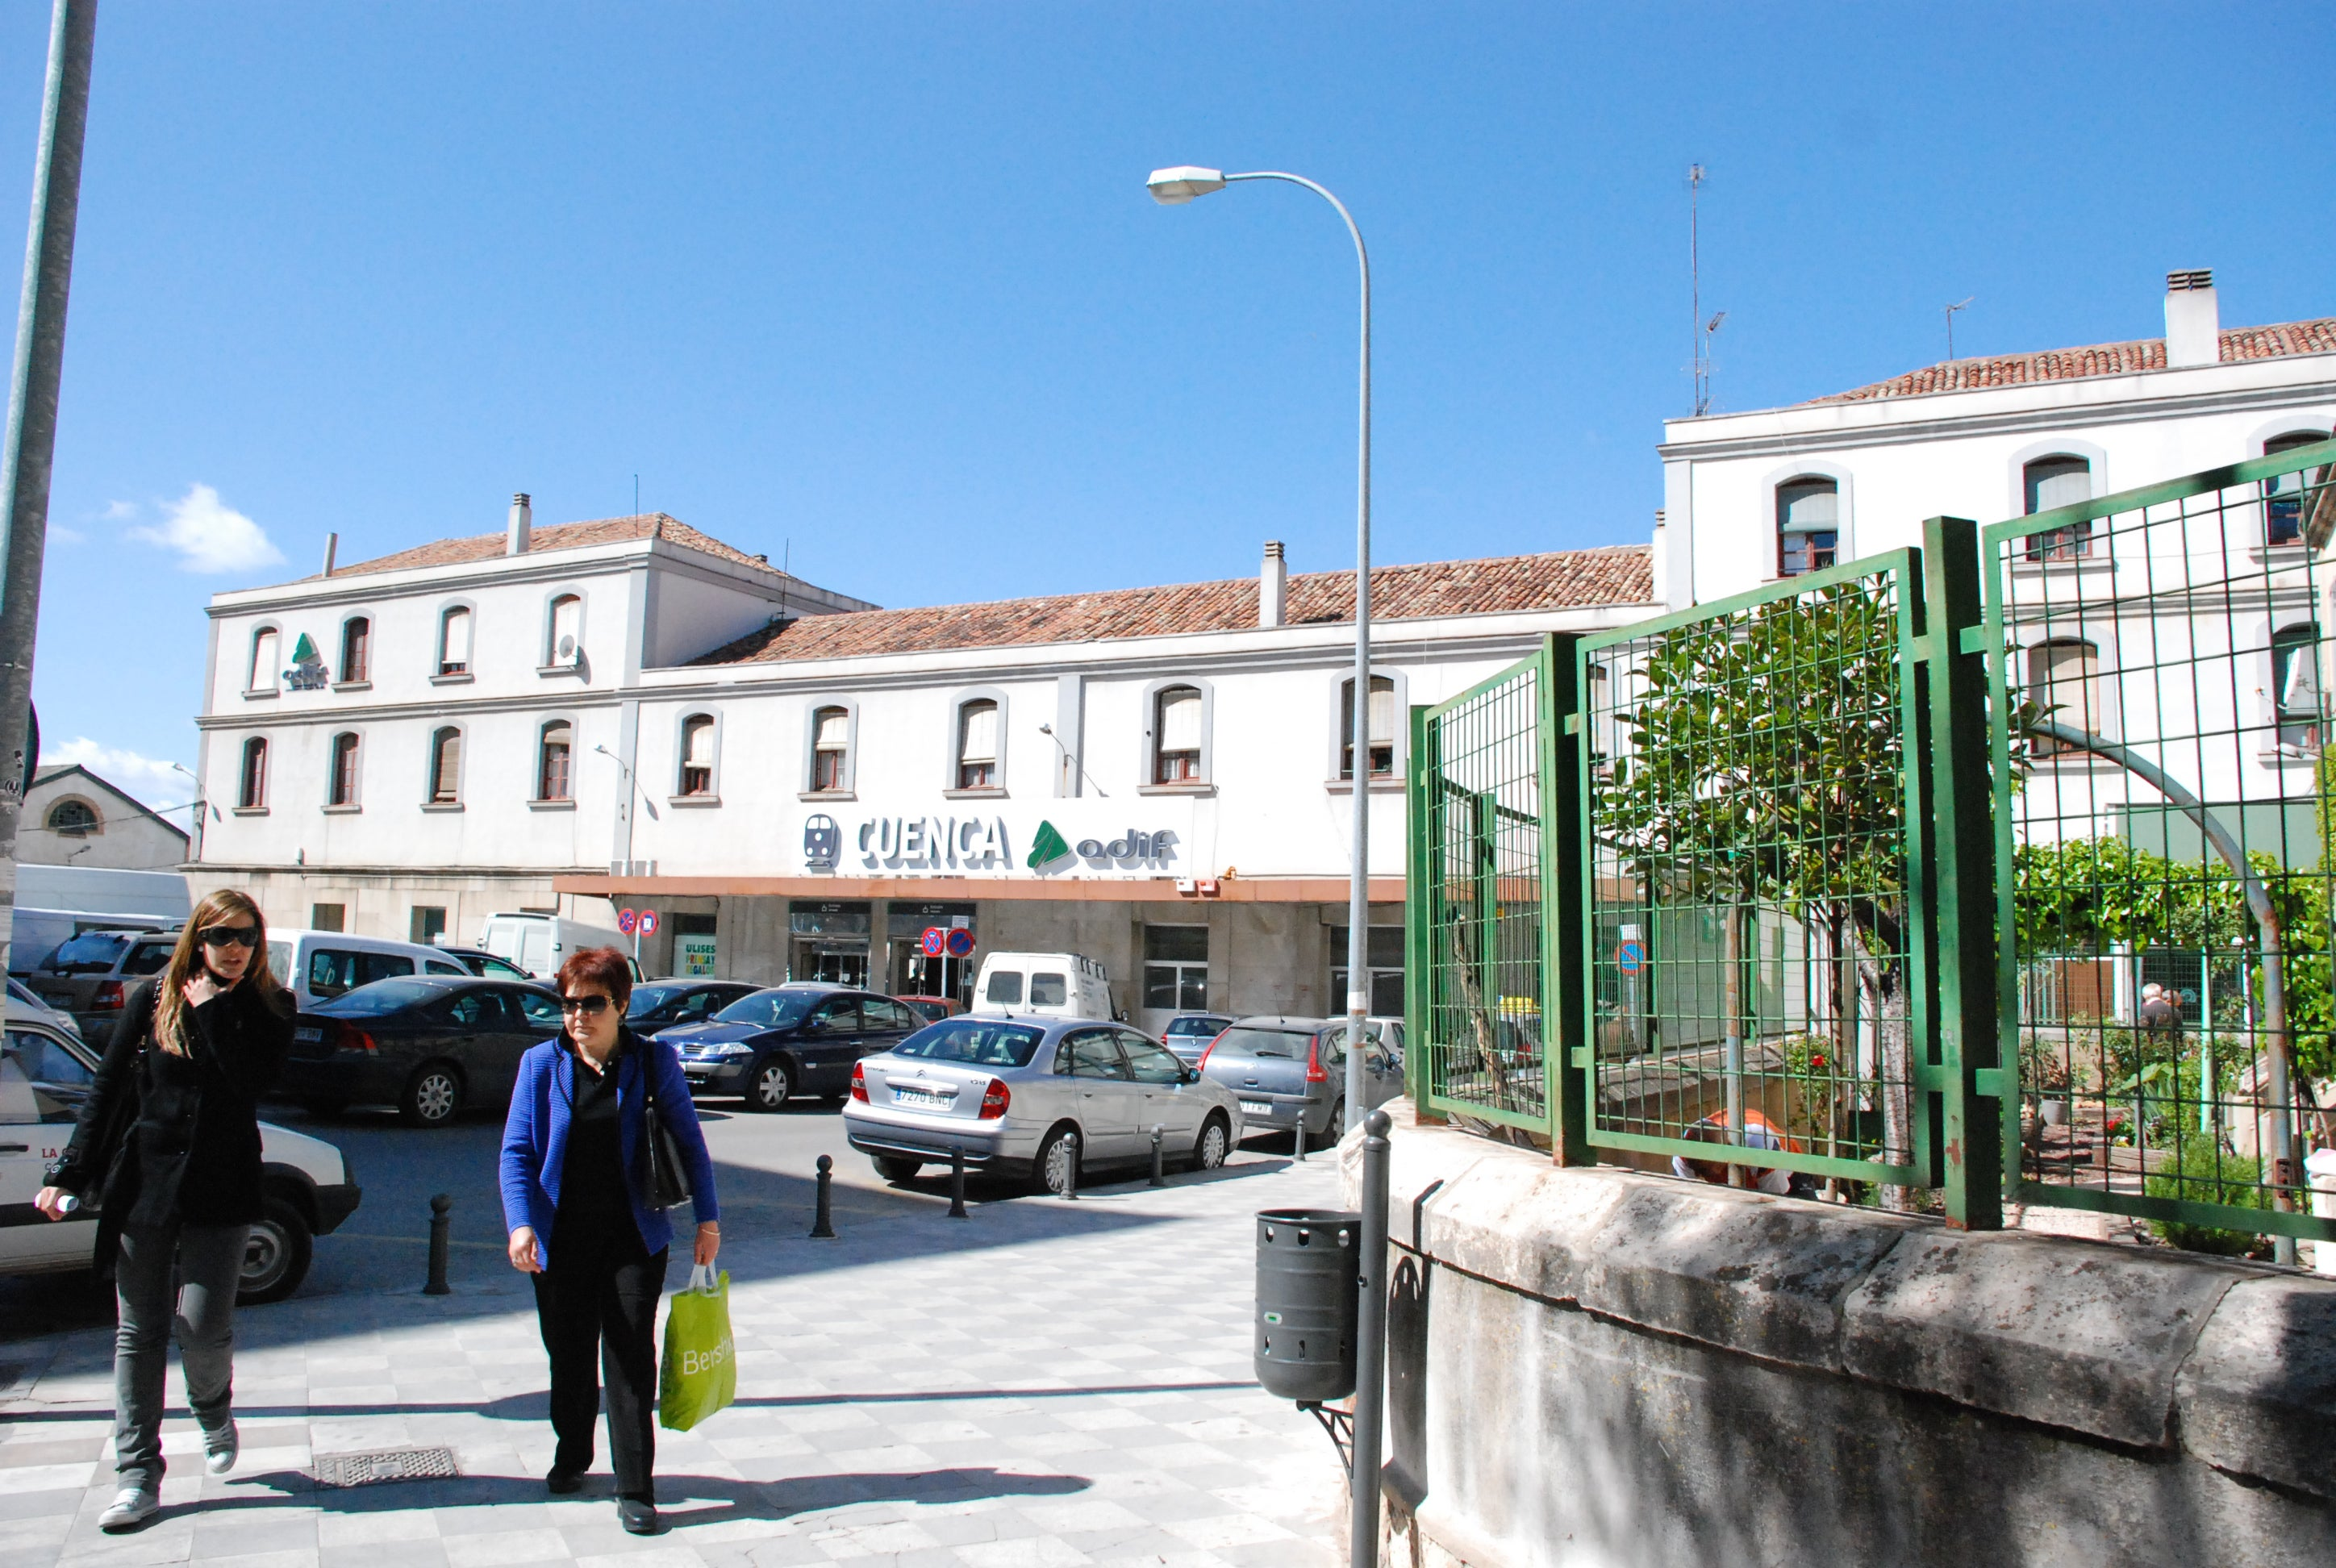 Cuenca Station